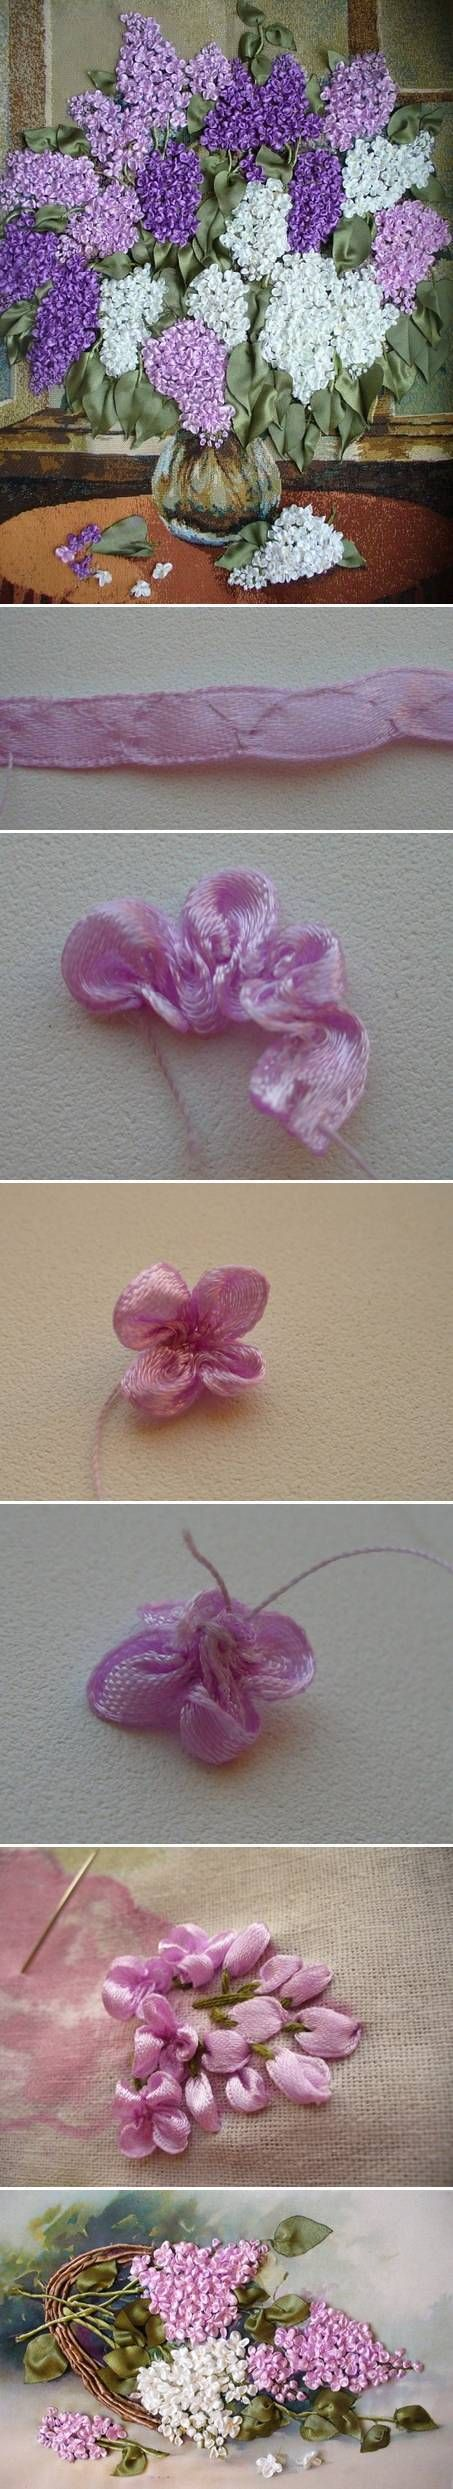 DIY Fabric Lilac Flowers DIY Projects | UsefulDIY.com Follow Us on Facebook == http://www.facebook.com/UsefulDiy